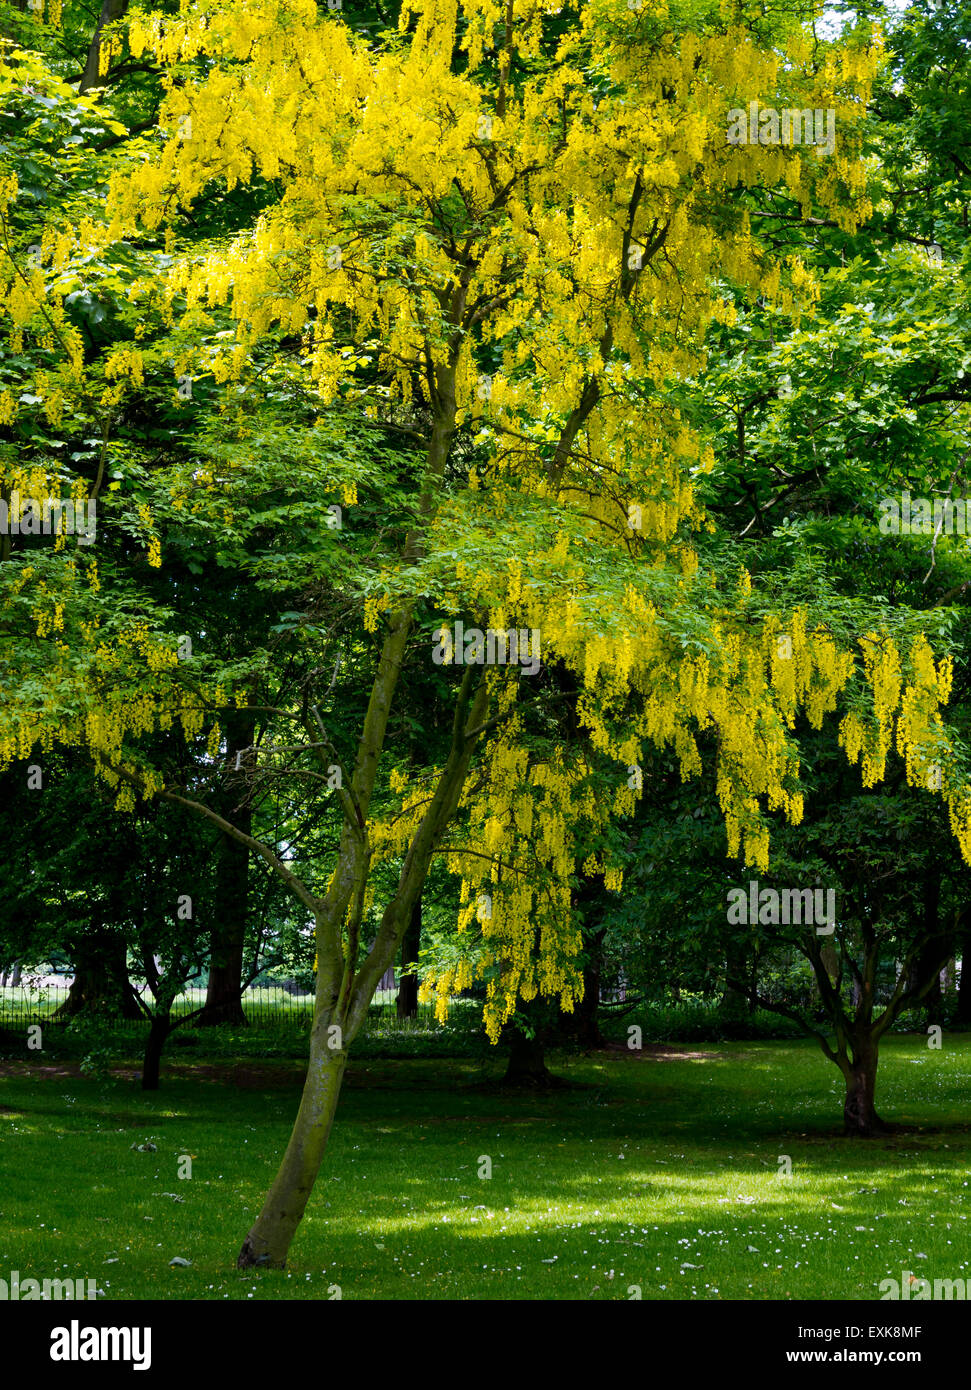 Laburnum tree in full flower in late spring with distinctive yellow colour covering the branches - Stock Image